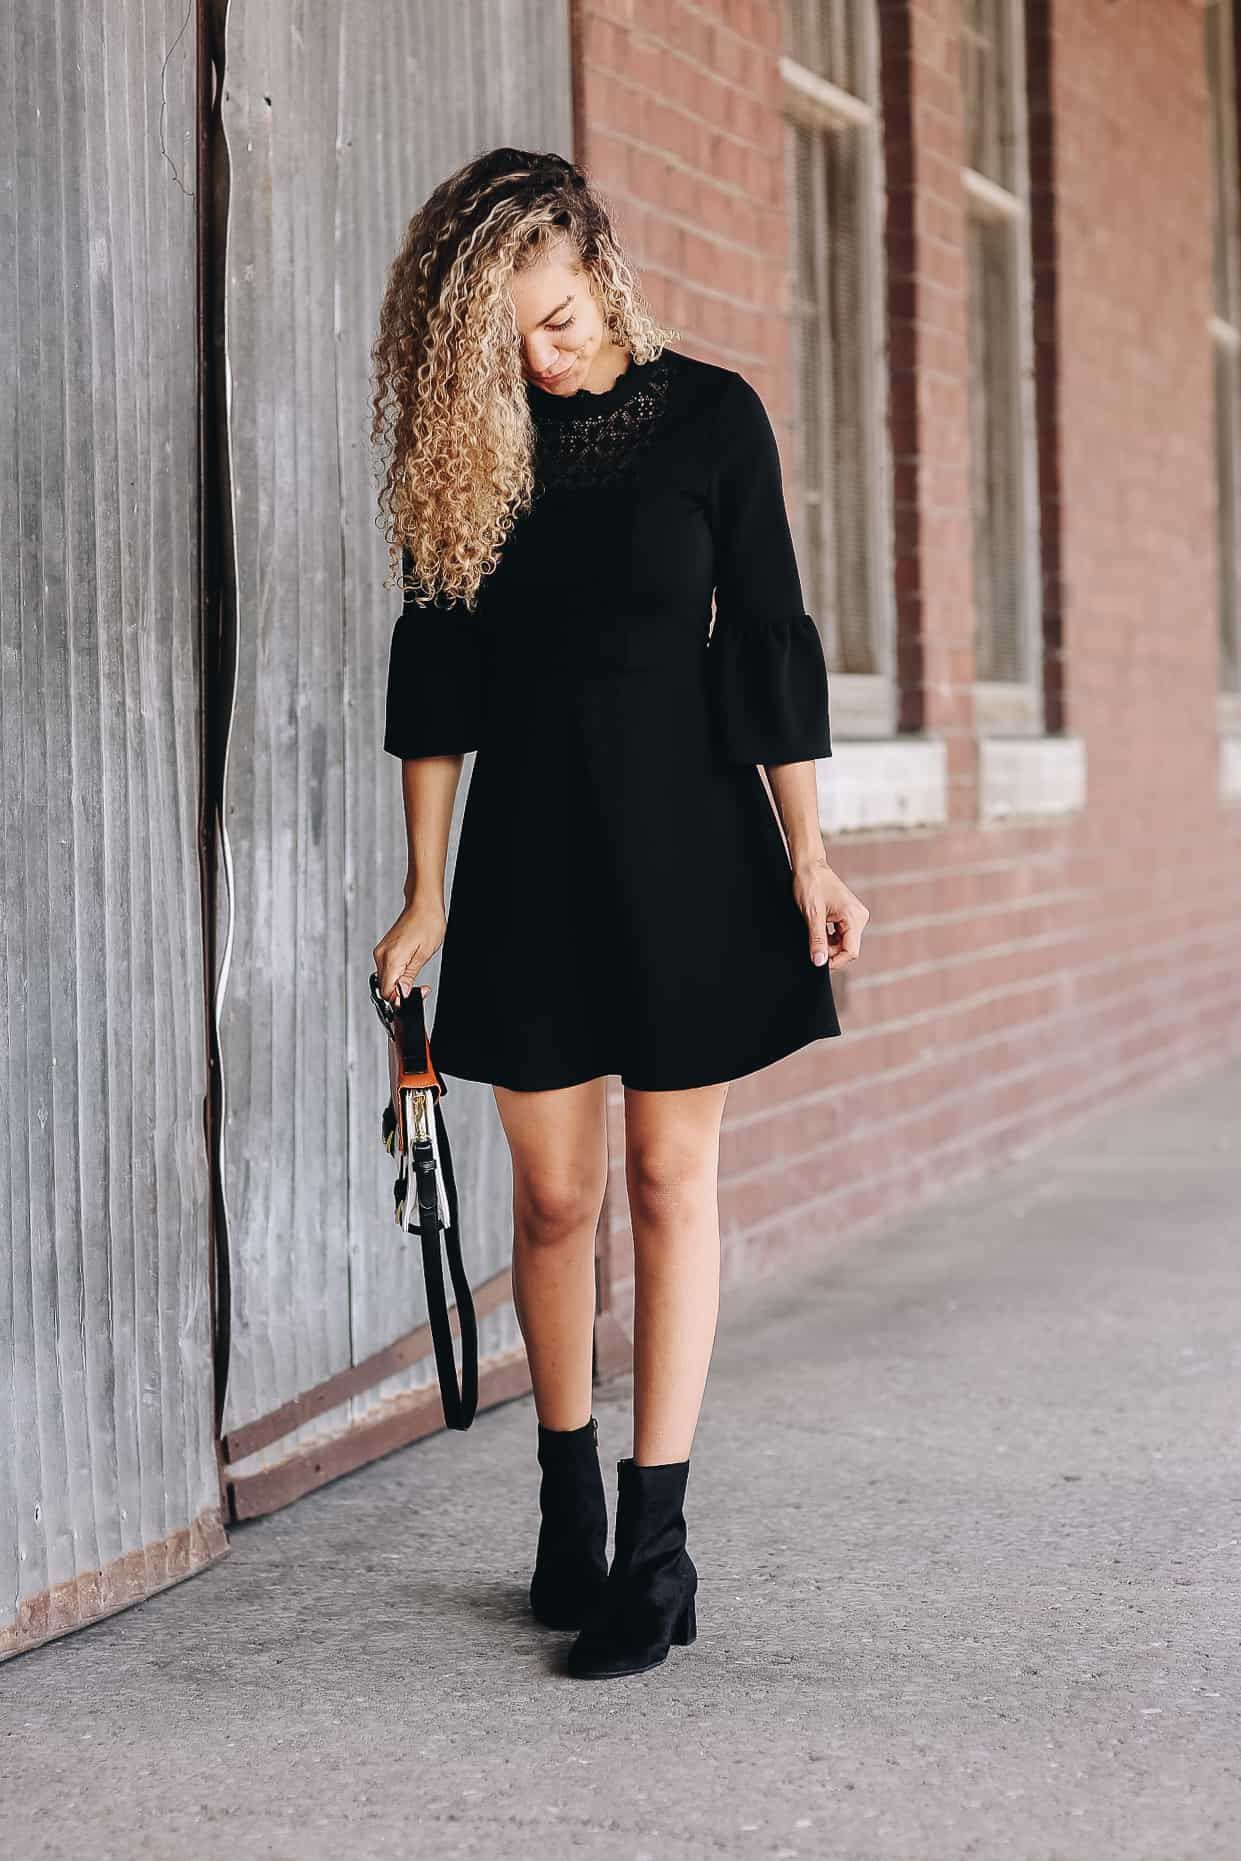 1 Pair Of Ankle Boots 3 Ways My Chic Obsession Casual Fall Outfits Ankle Boots Dress Fall Boots Outfit [ 1861 x 1241 Pixel ]